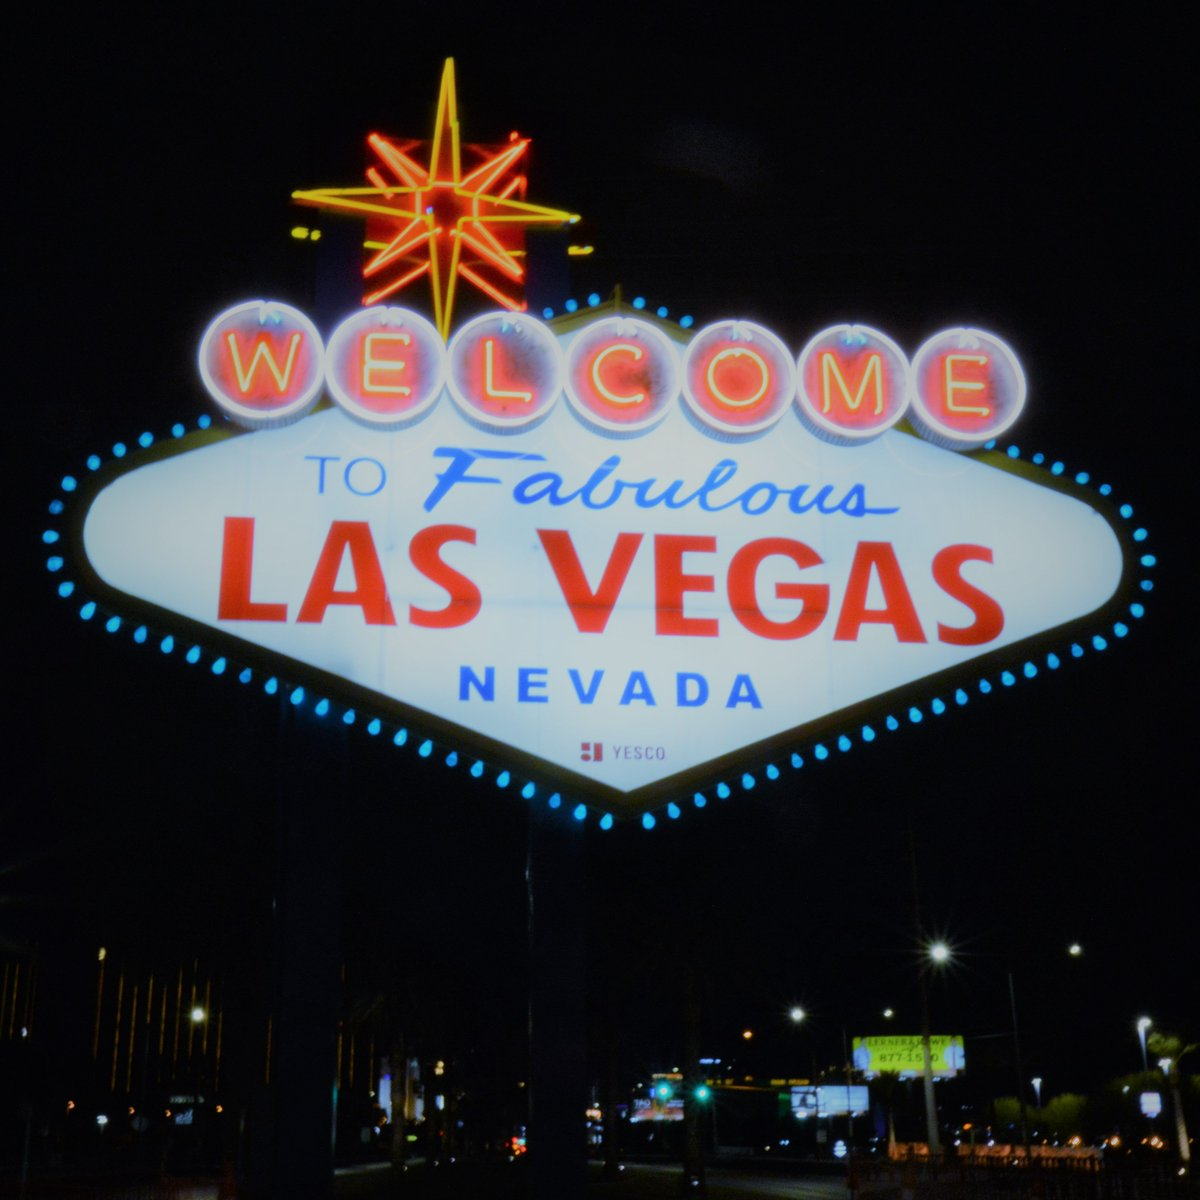 "#VegasGoesBlue - Who is showing support for healthcare workers, first responders and everyone on the front lines in the fight against #COVID19. Reply and share your photos with us - we'll start by showing the blue lights on the ""Welcome to Las #Vegas"" sign. #InItTogether💙"